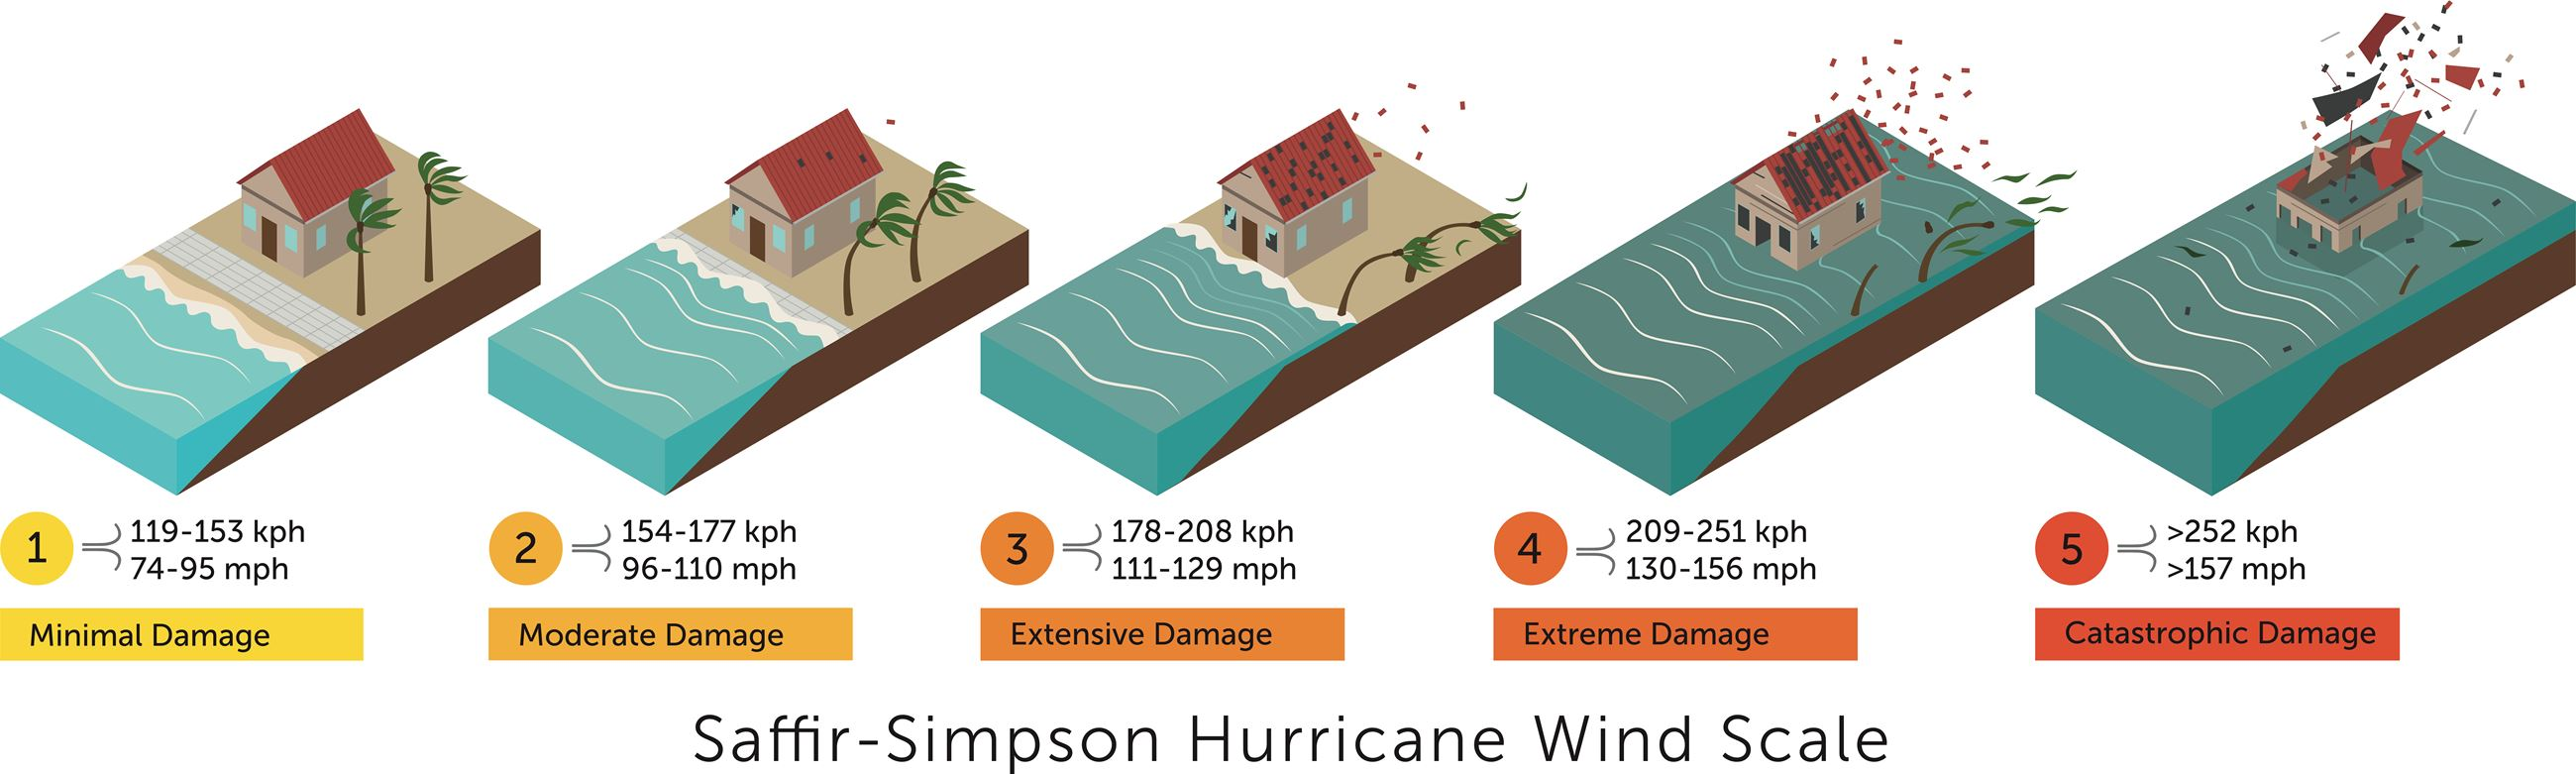 Chart explaining categories of hurricanes based on wind speed